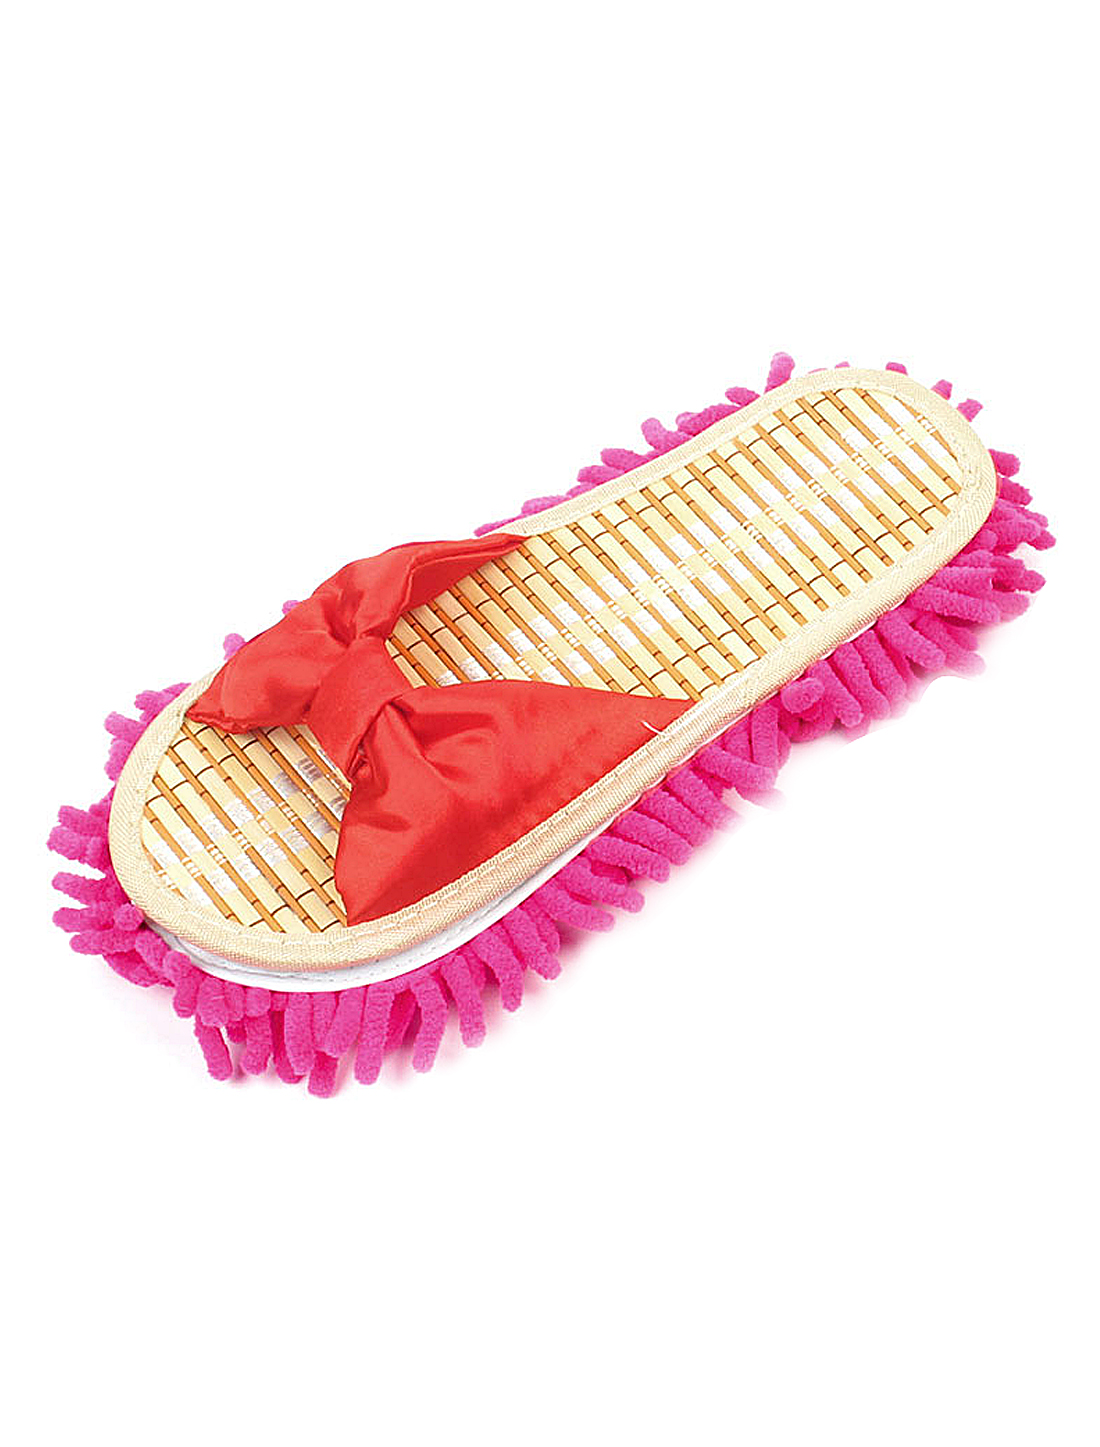 Women Bowtie Accent Floor Cleaning Mop Slippers Shoes 44 Red